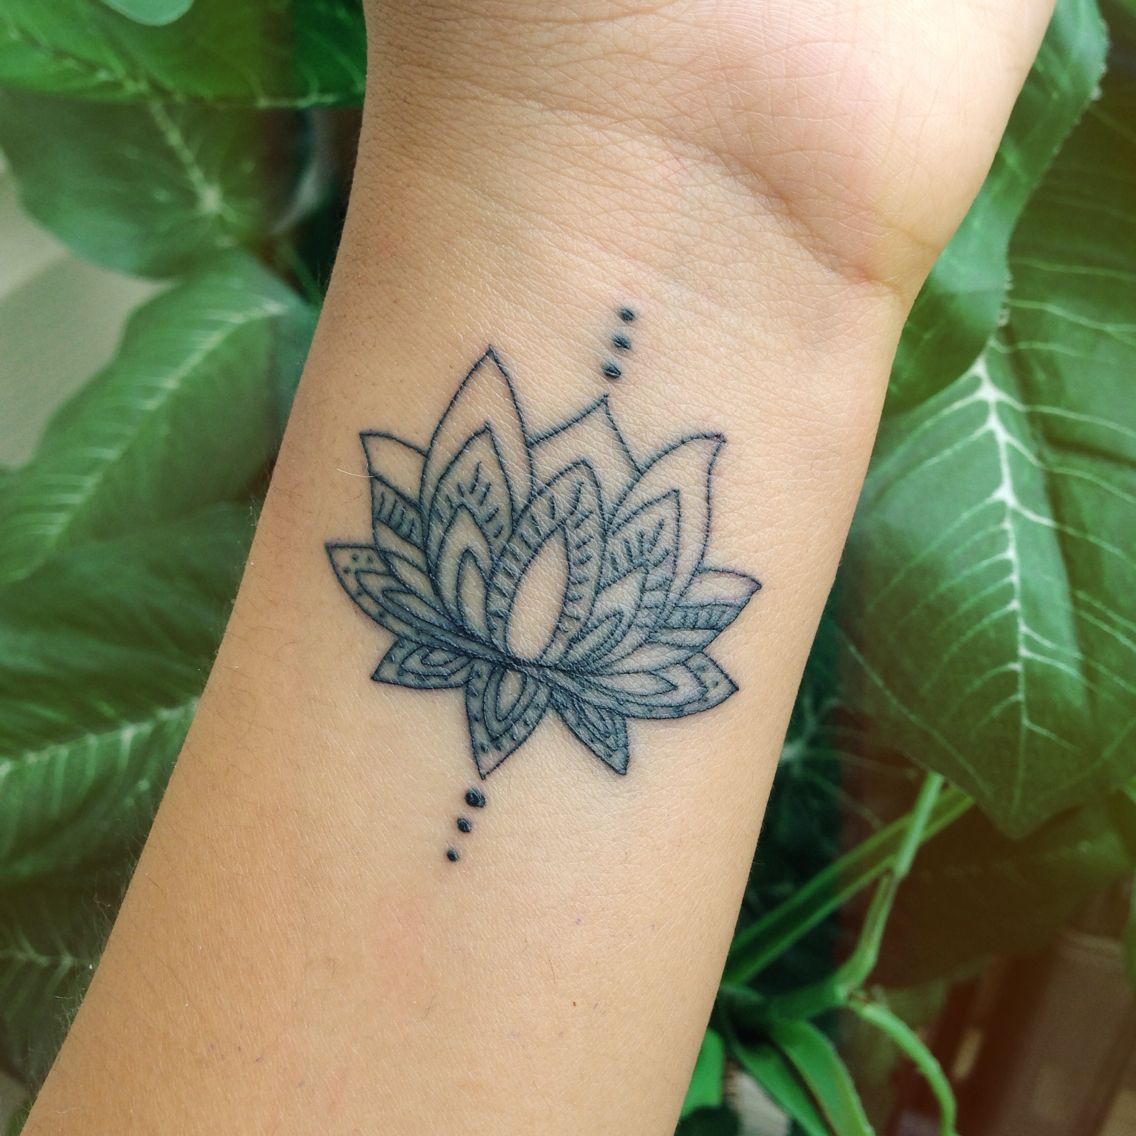 Small Wrist Lotus Flower Tattoo Designs: Symbolizes Strength, Positivity & New